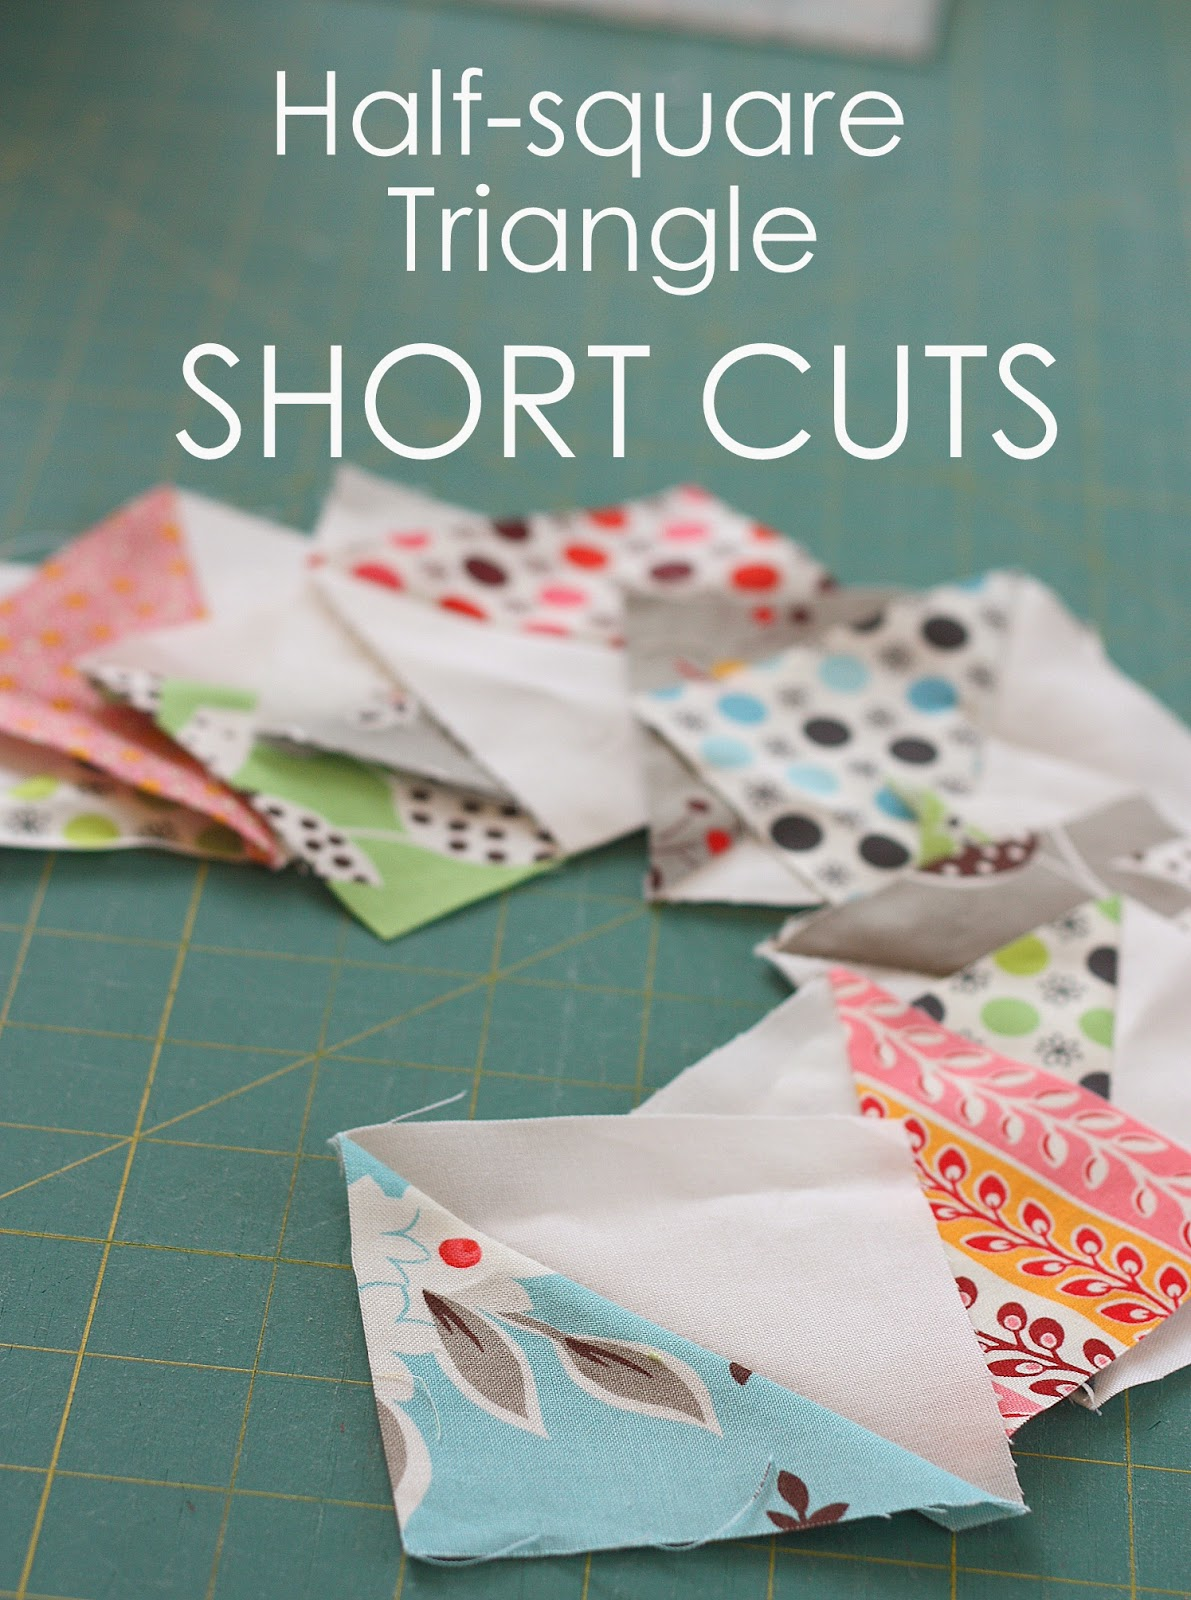 Half Square Triangle Short Cuts : half square triangle quilt - Adamdwight.com